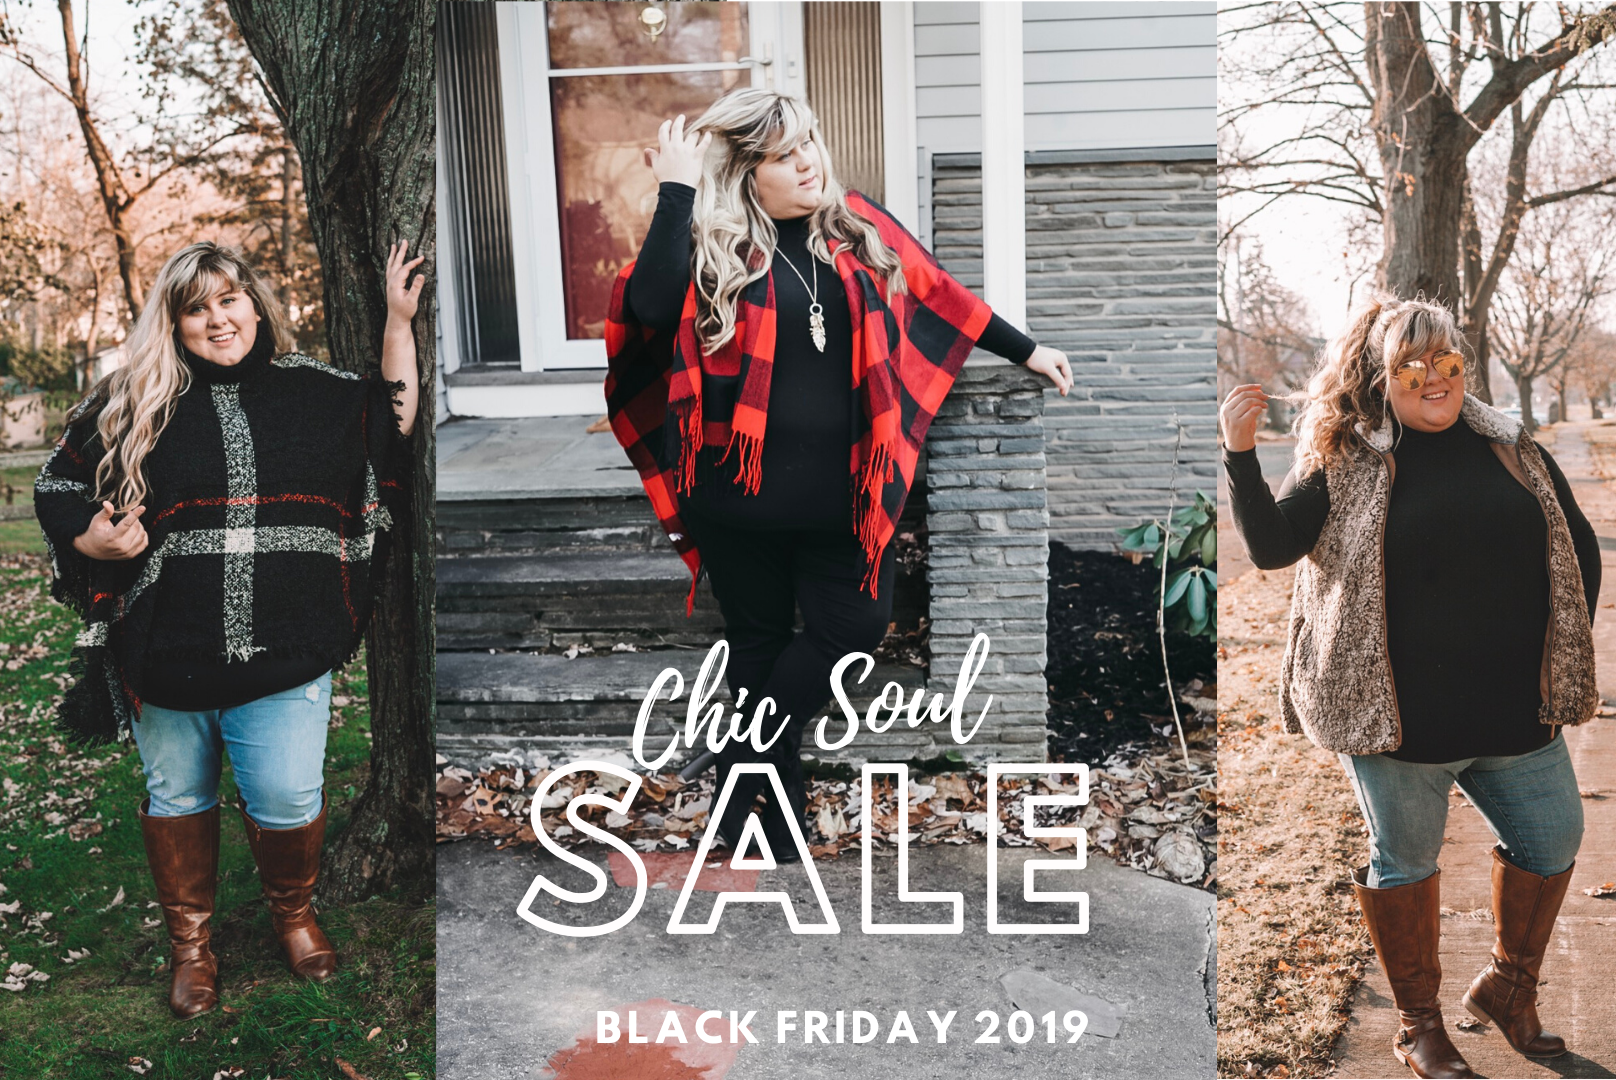 3 Reasons to Love Chic Soul on Black Friday